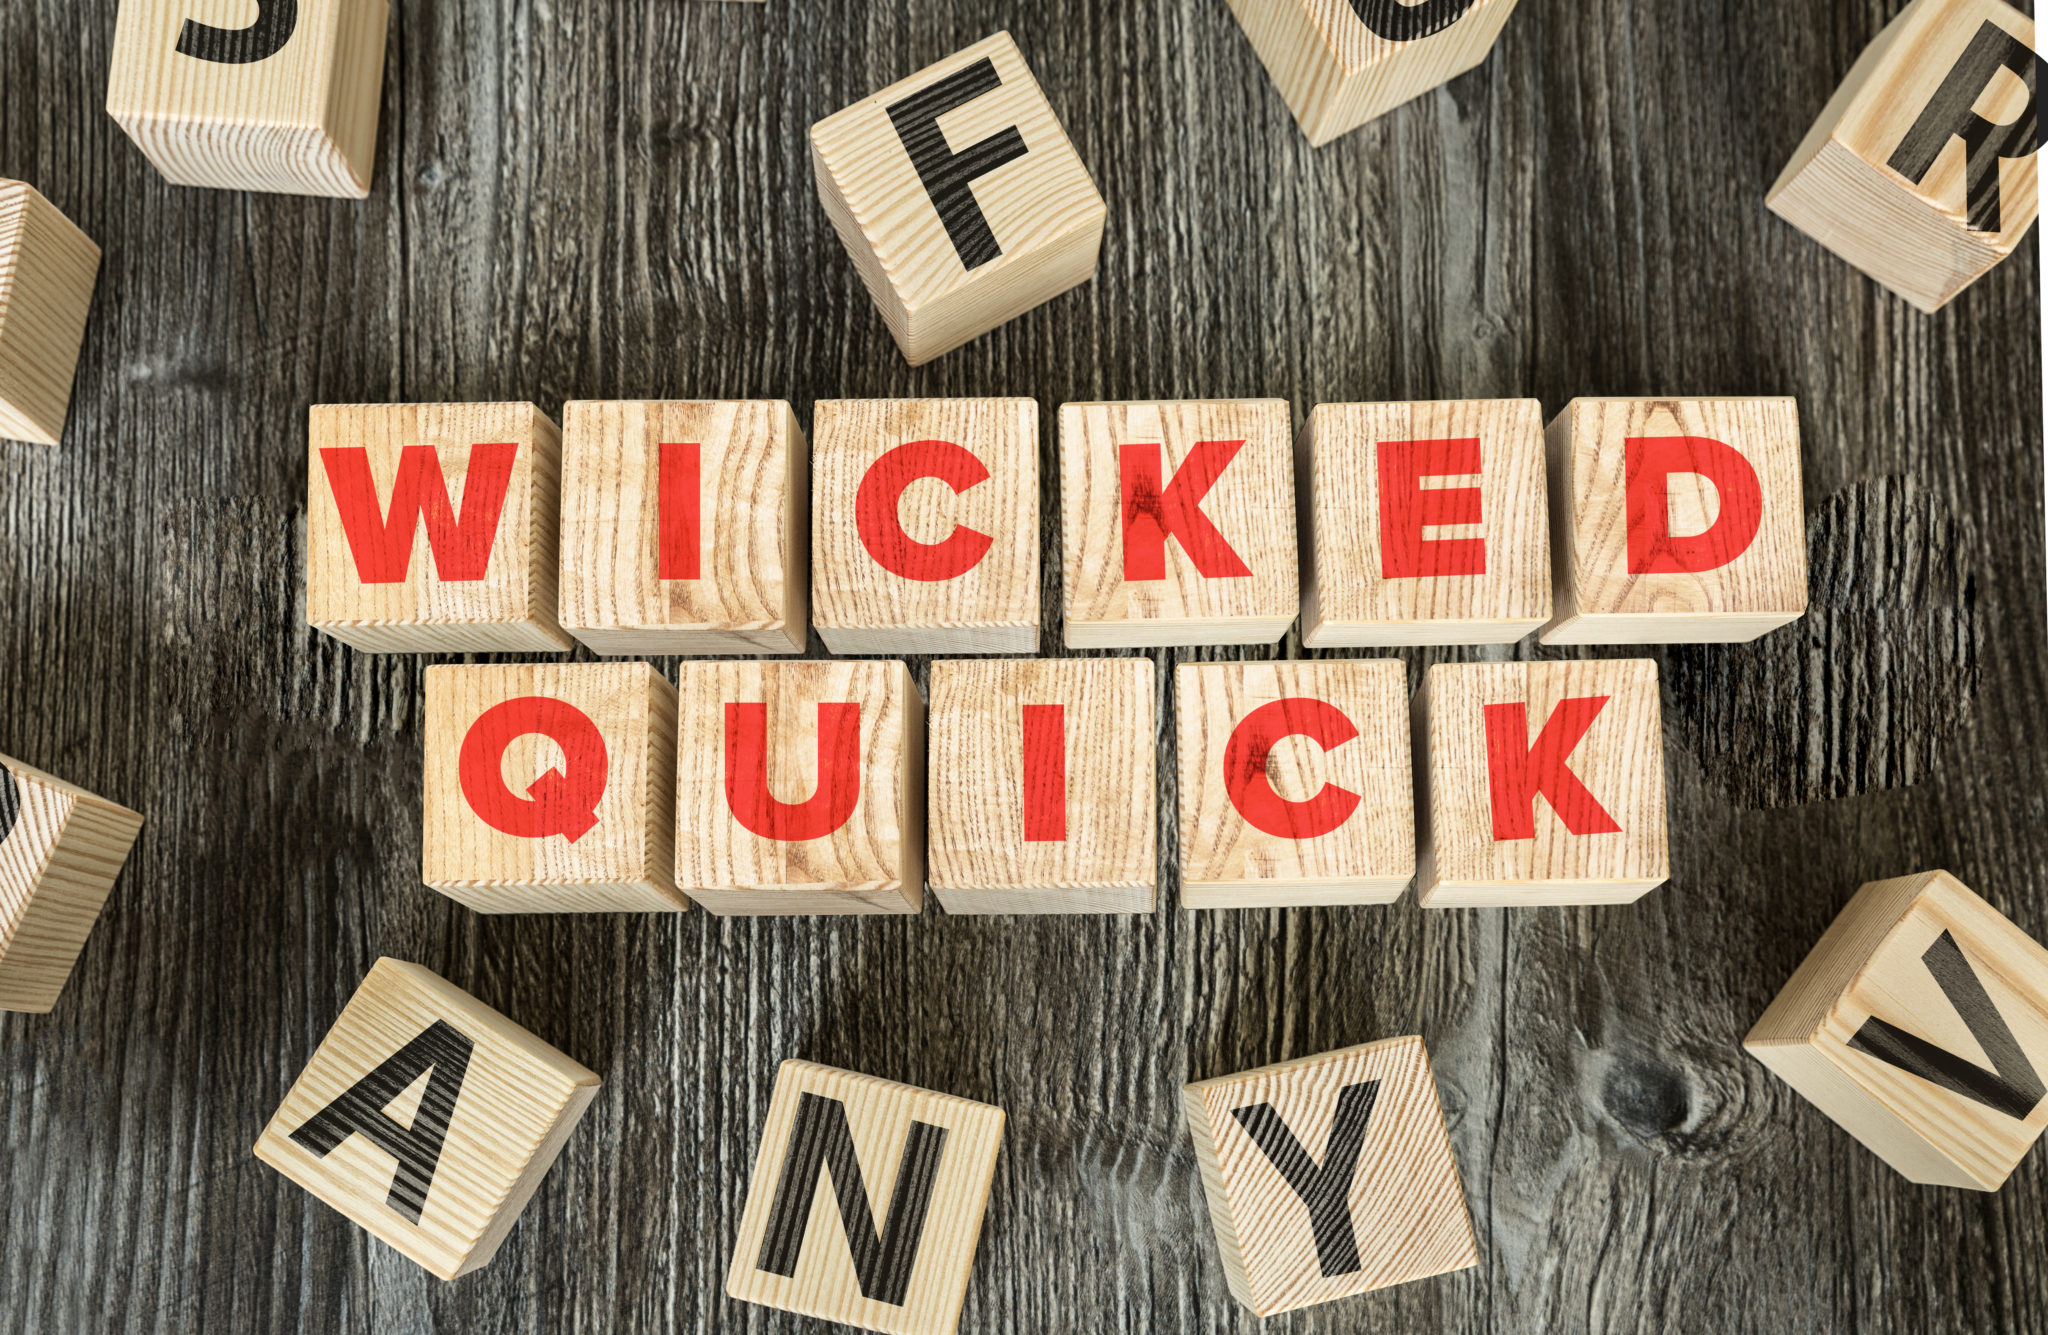 Wicked Quick: retail trends from Stratix